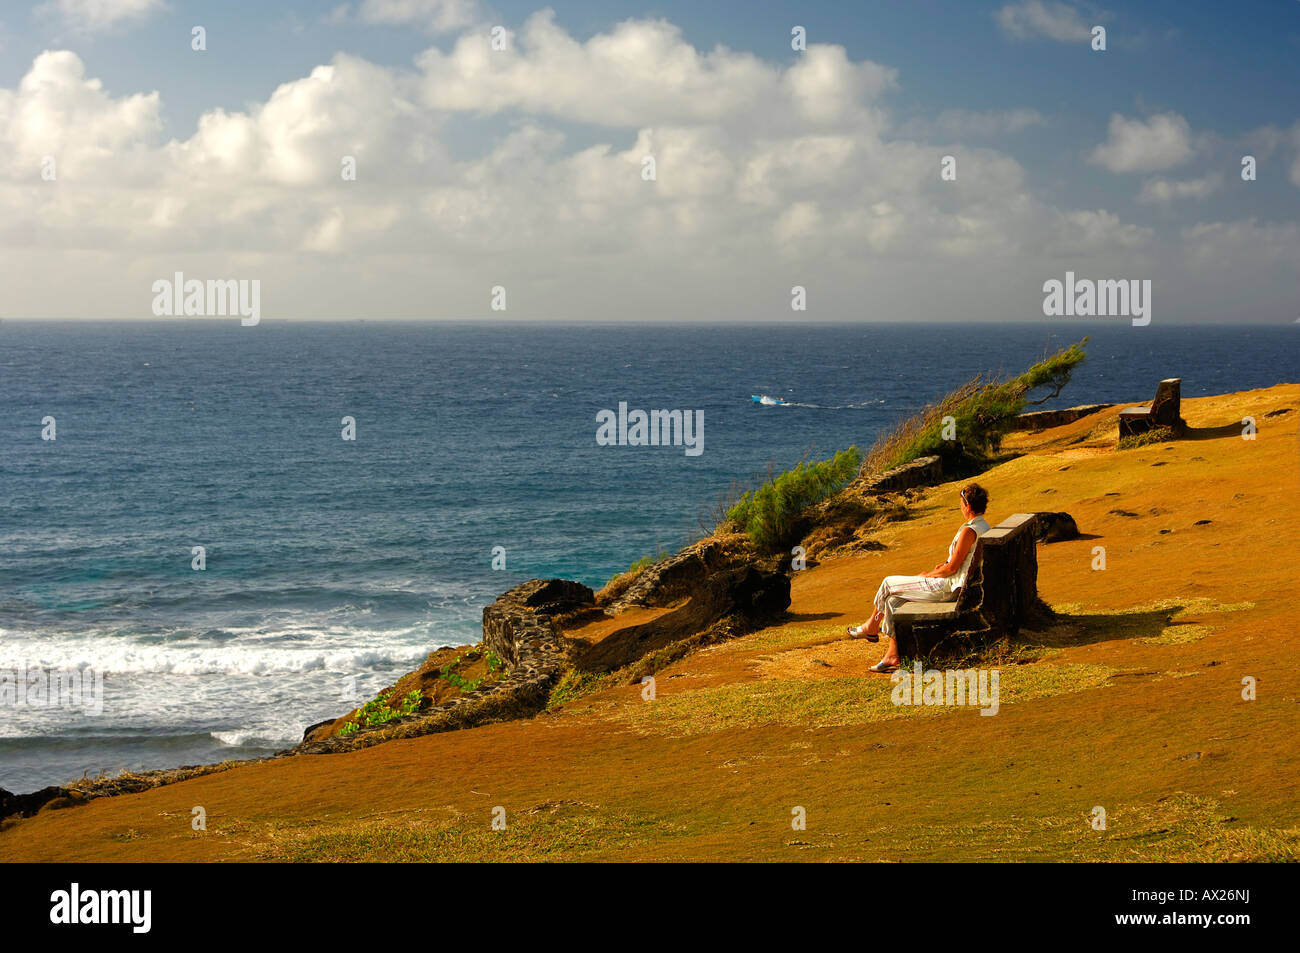 Gris-Gris viewpoint on the clifftop, Souillac, Mauritius - Stock Image